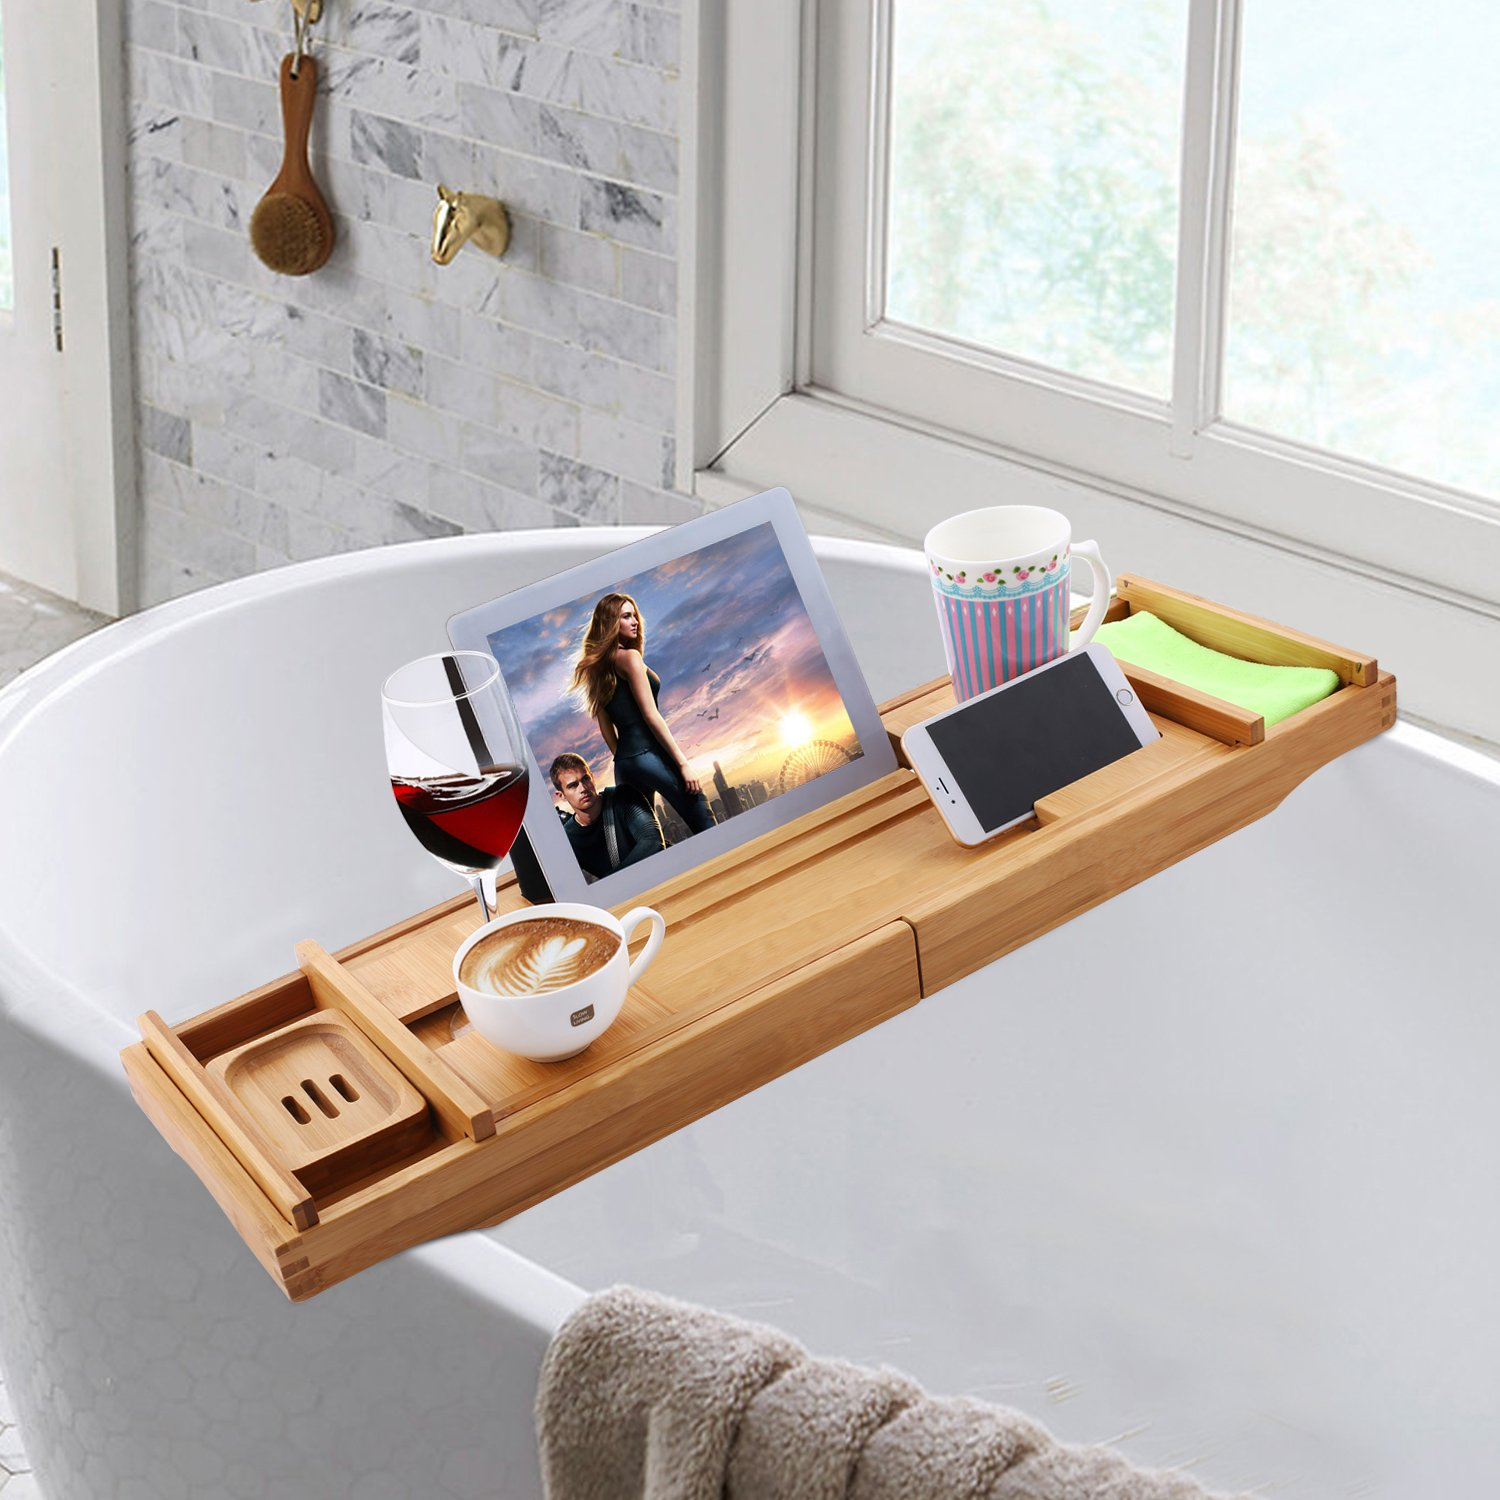 Adjustable 12 in 1 Bath Tube Caddy Tray, 1/2 Person SPA Bamboo Bathtub Caddy, Soap Dish| Wine Glass Holder, Book Reading Rack| Wooden Shelf (Bamboo)